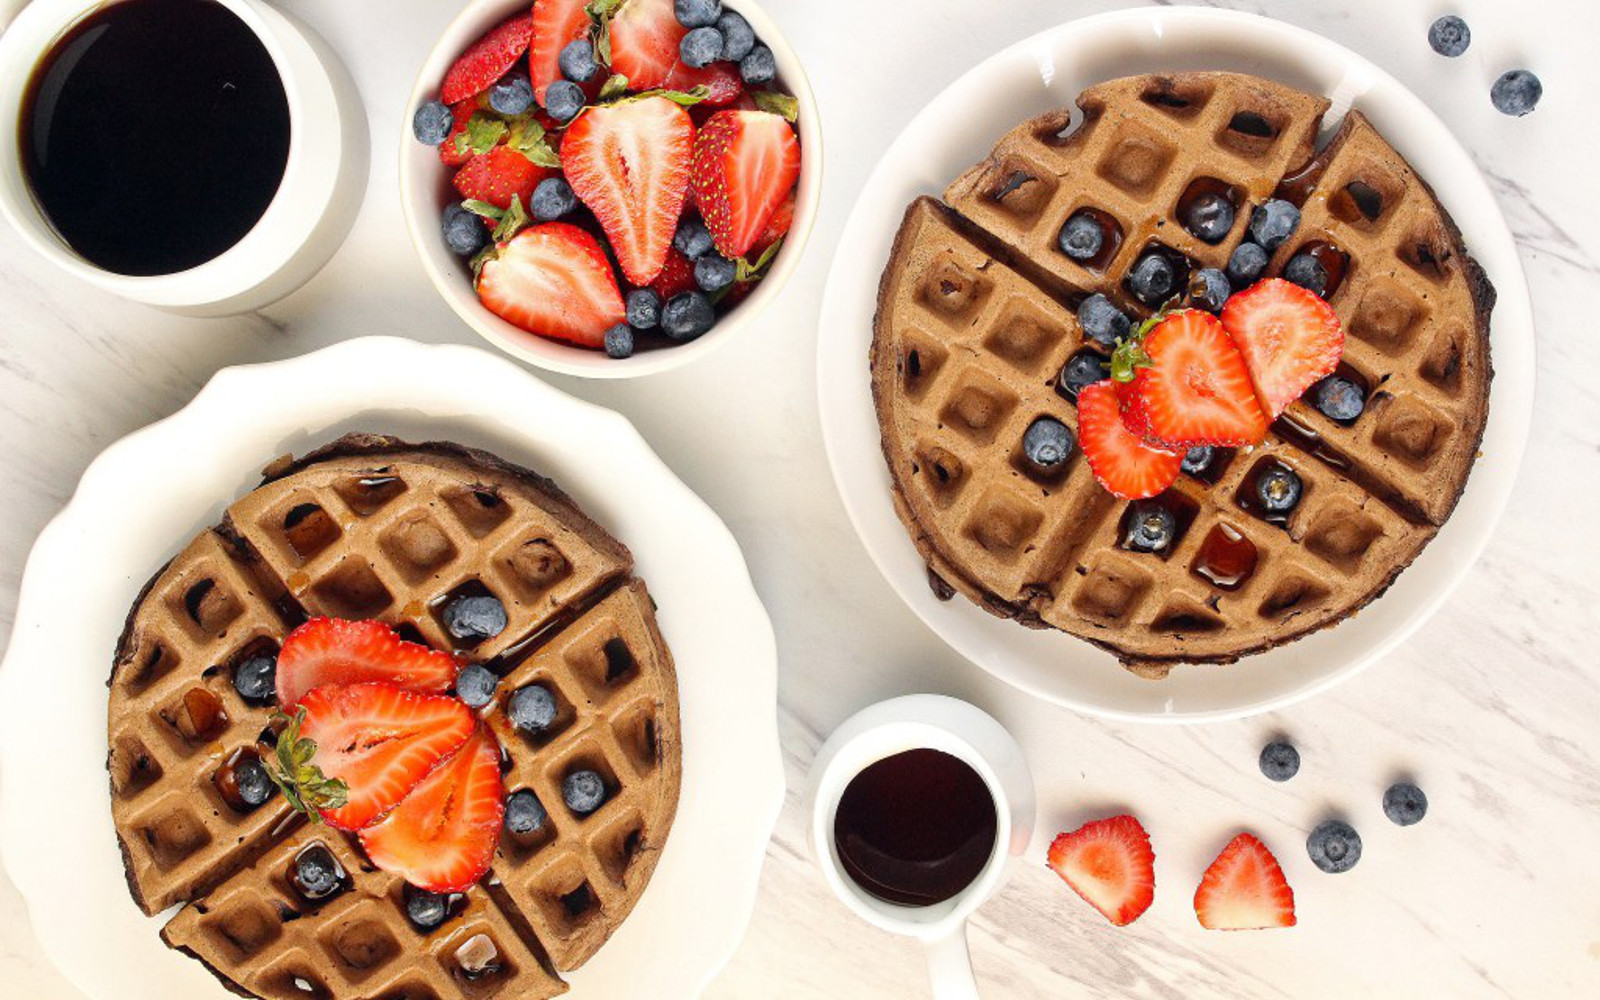 Vegan Gluten-Free Chocolate Zucchini Waffles with fresh fruit and coffee